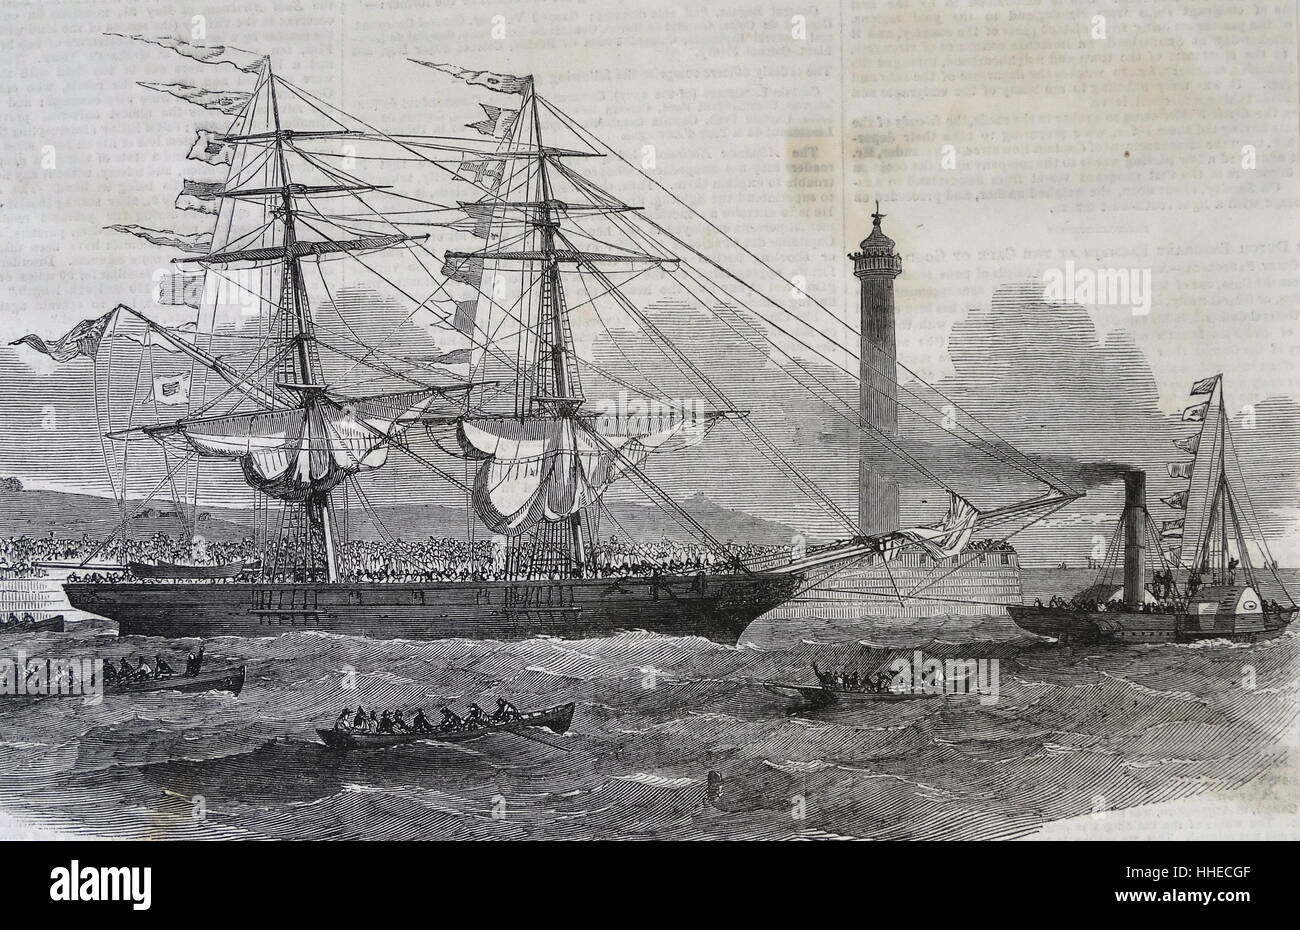 The Lizzie Webber. the first emigrant ship to leave Sunderland for Australia. 1852 - Stock Image